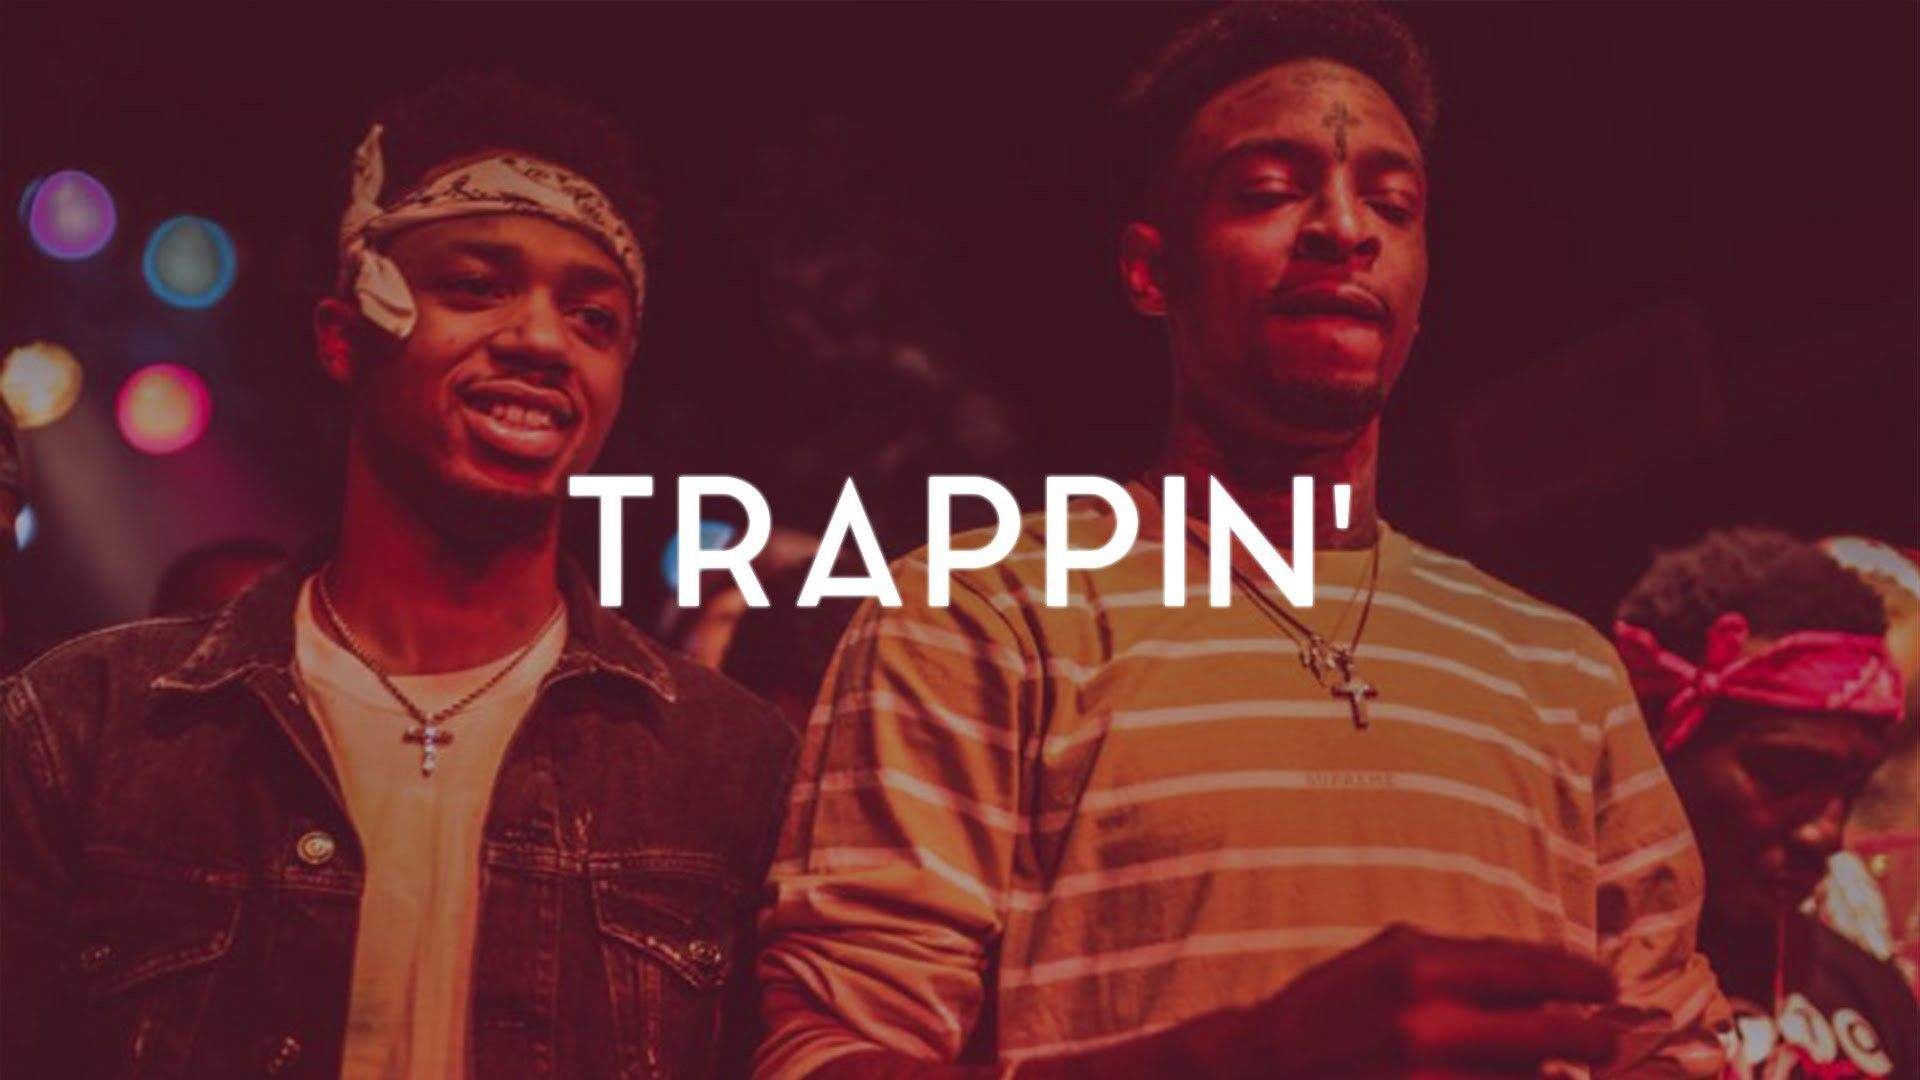 1920x1080 iPhone Wallpaper 21 Savage Luxury Metro Boomin Wallpapers 81 Images ...